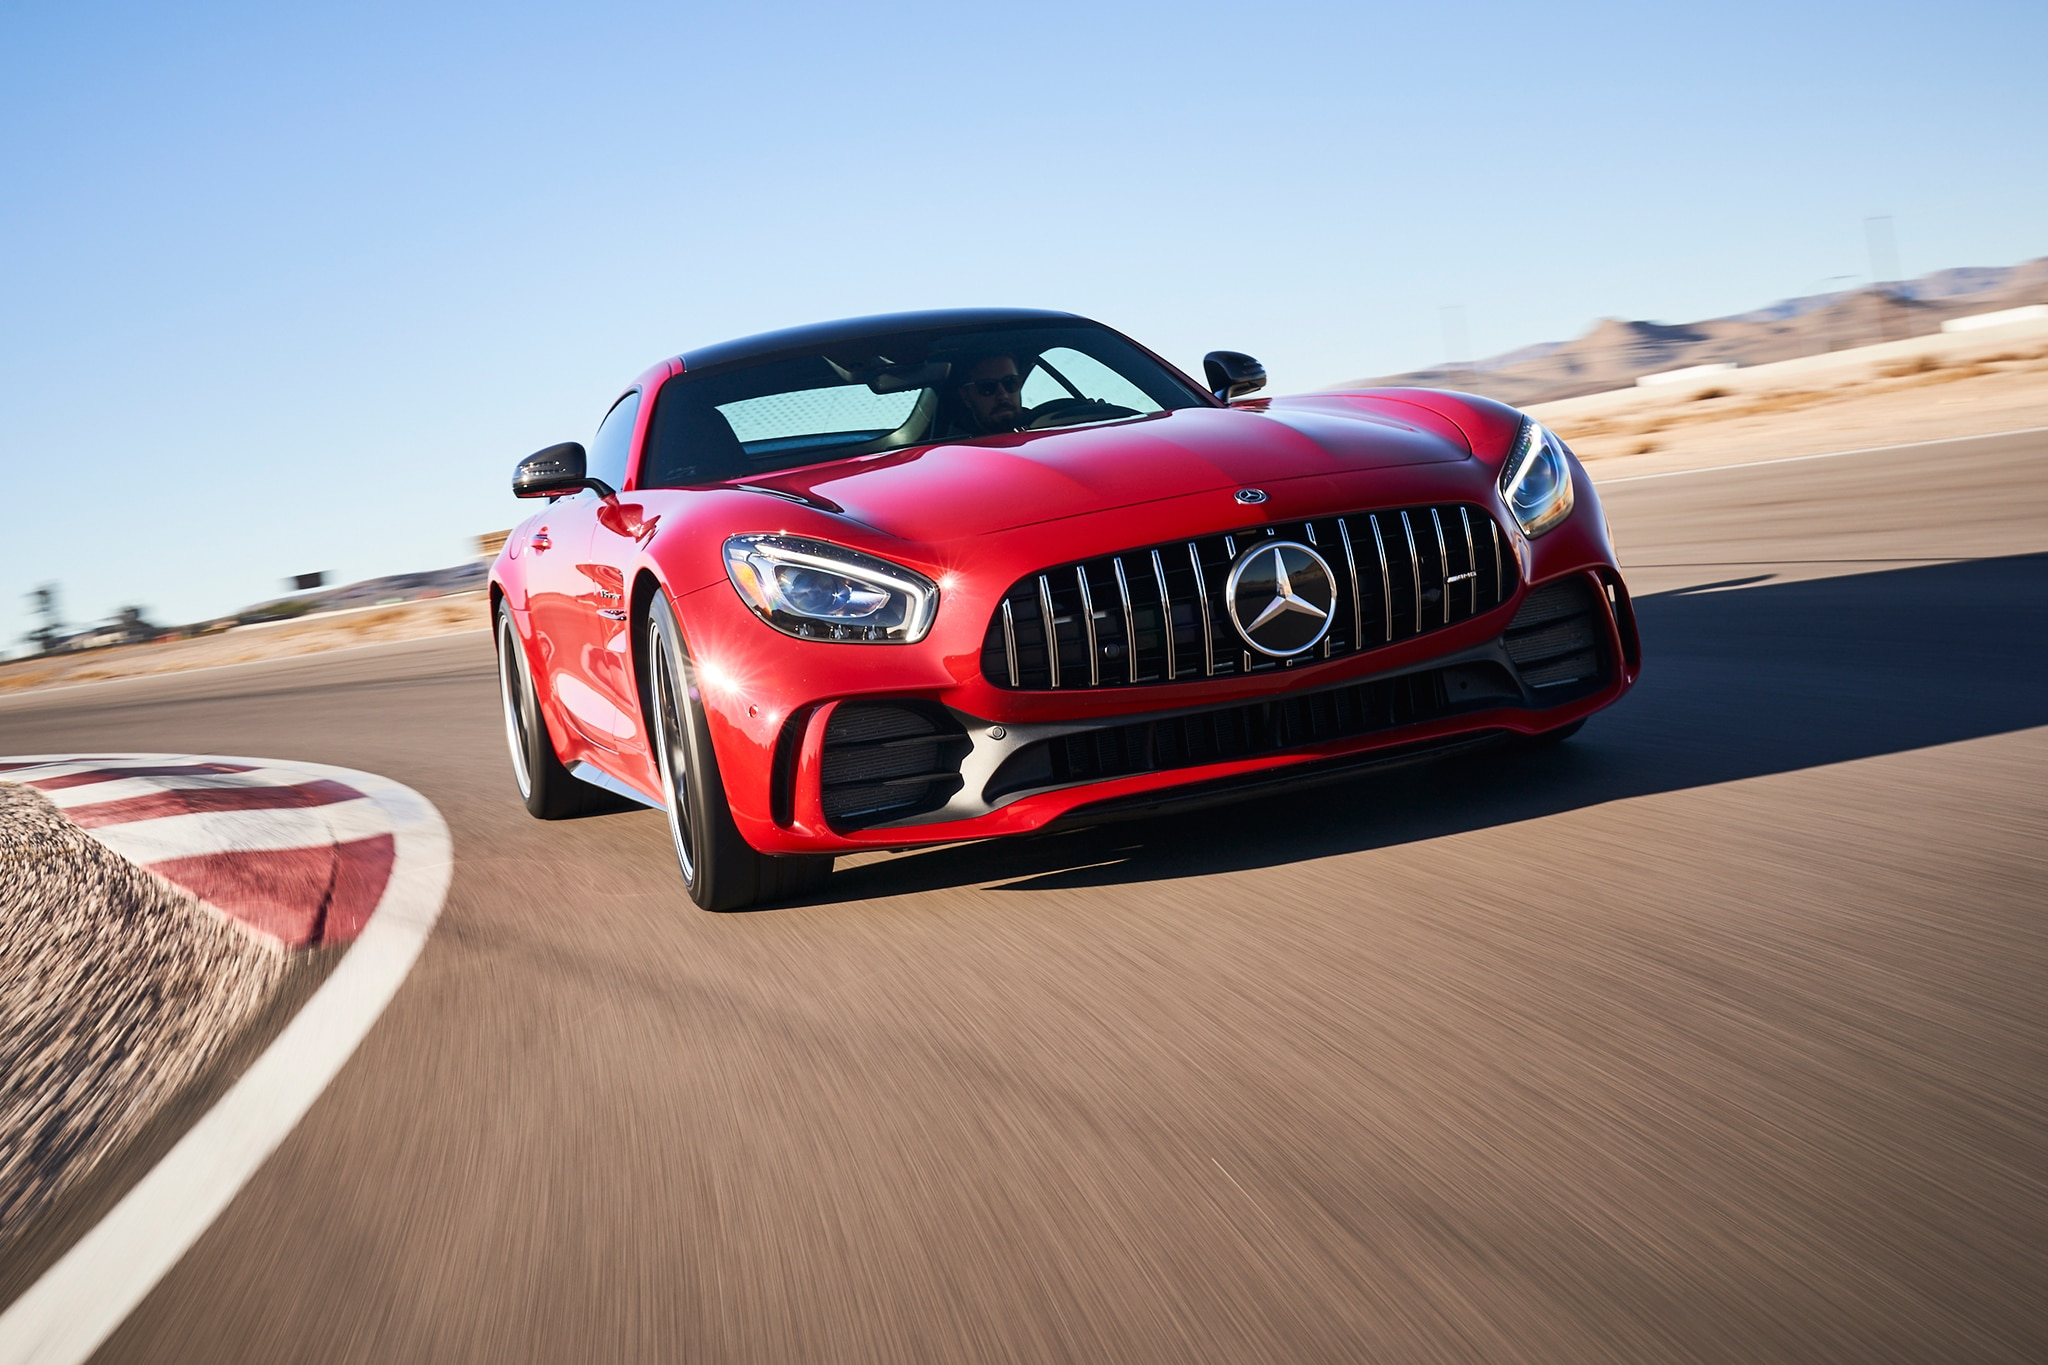 Mercedes-AMG GT 4-Door Coupe ready to challenge the Porsche Panamera